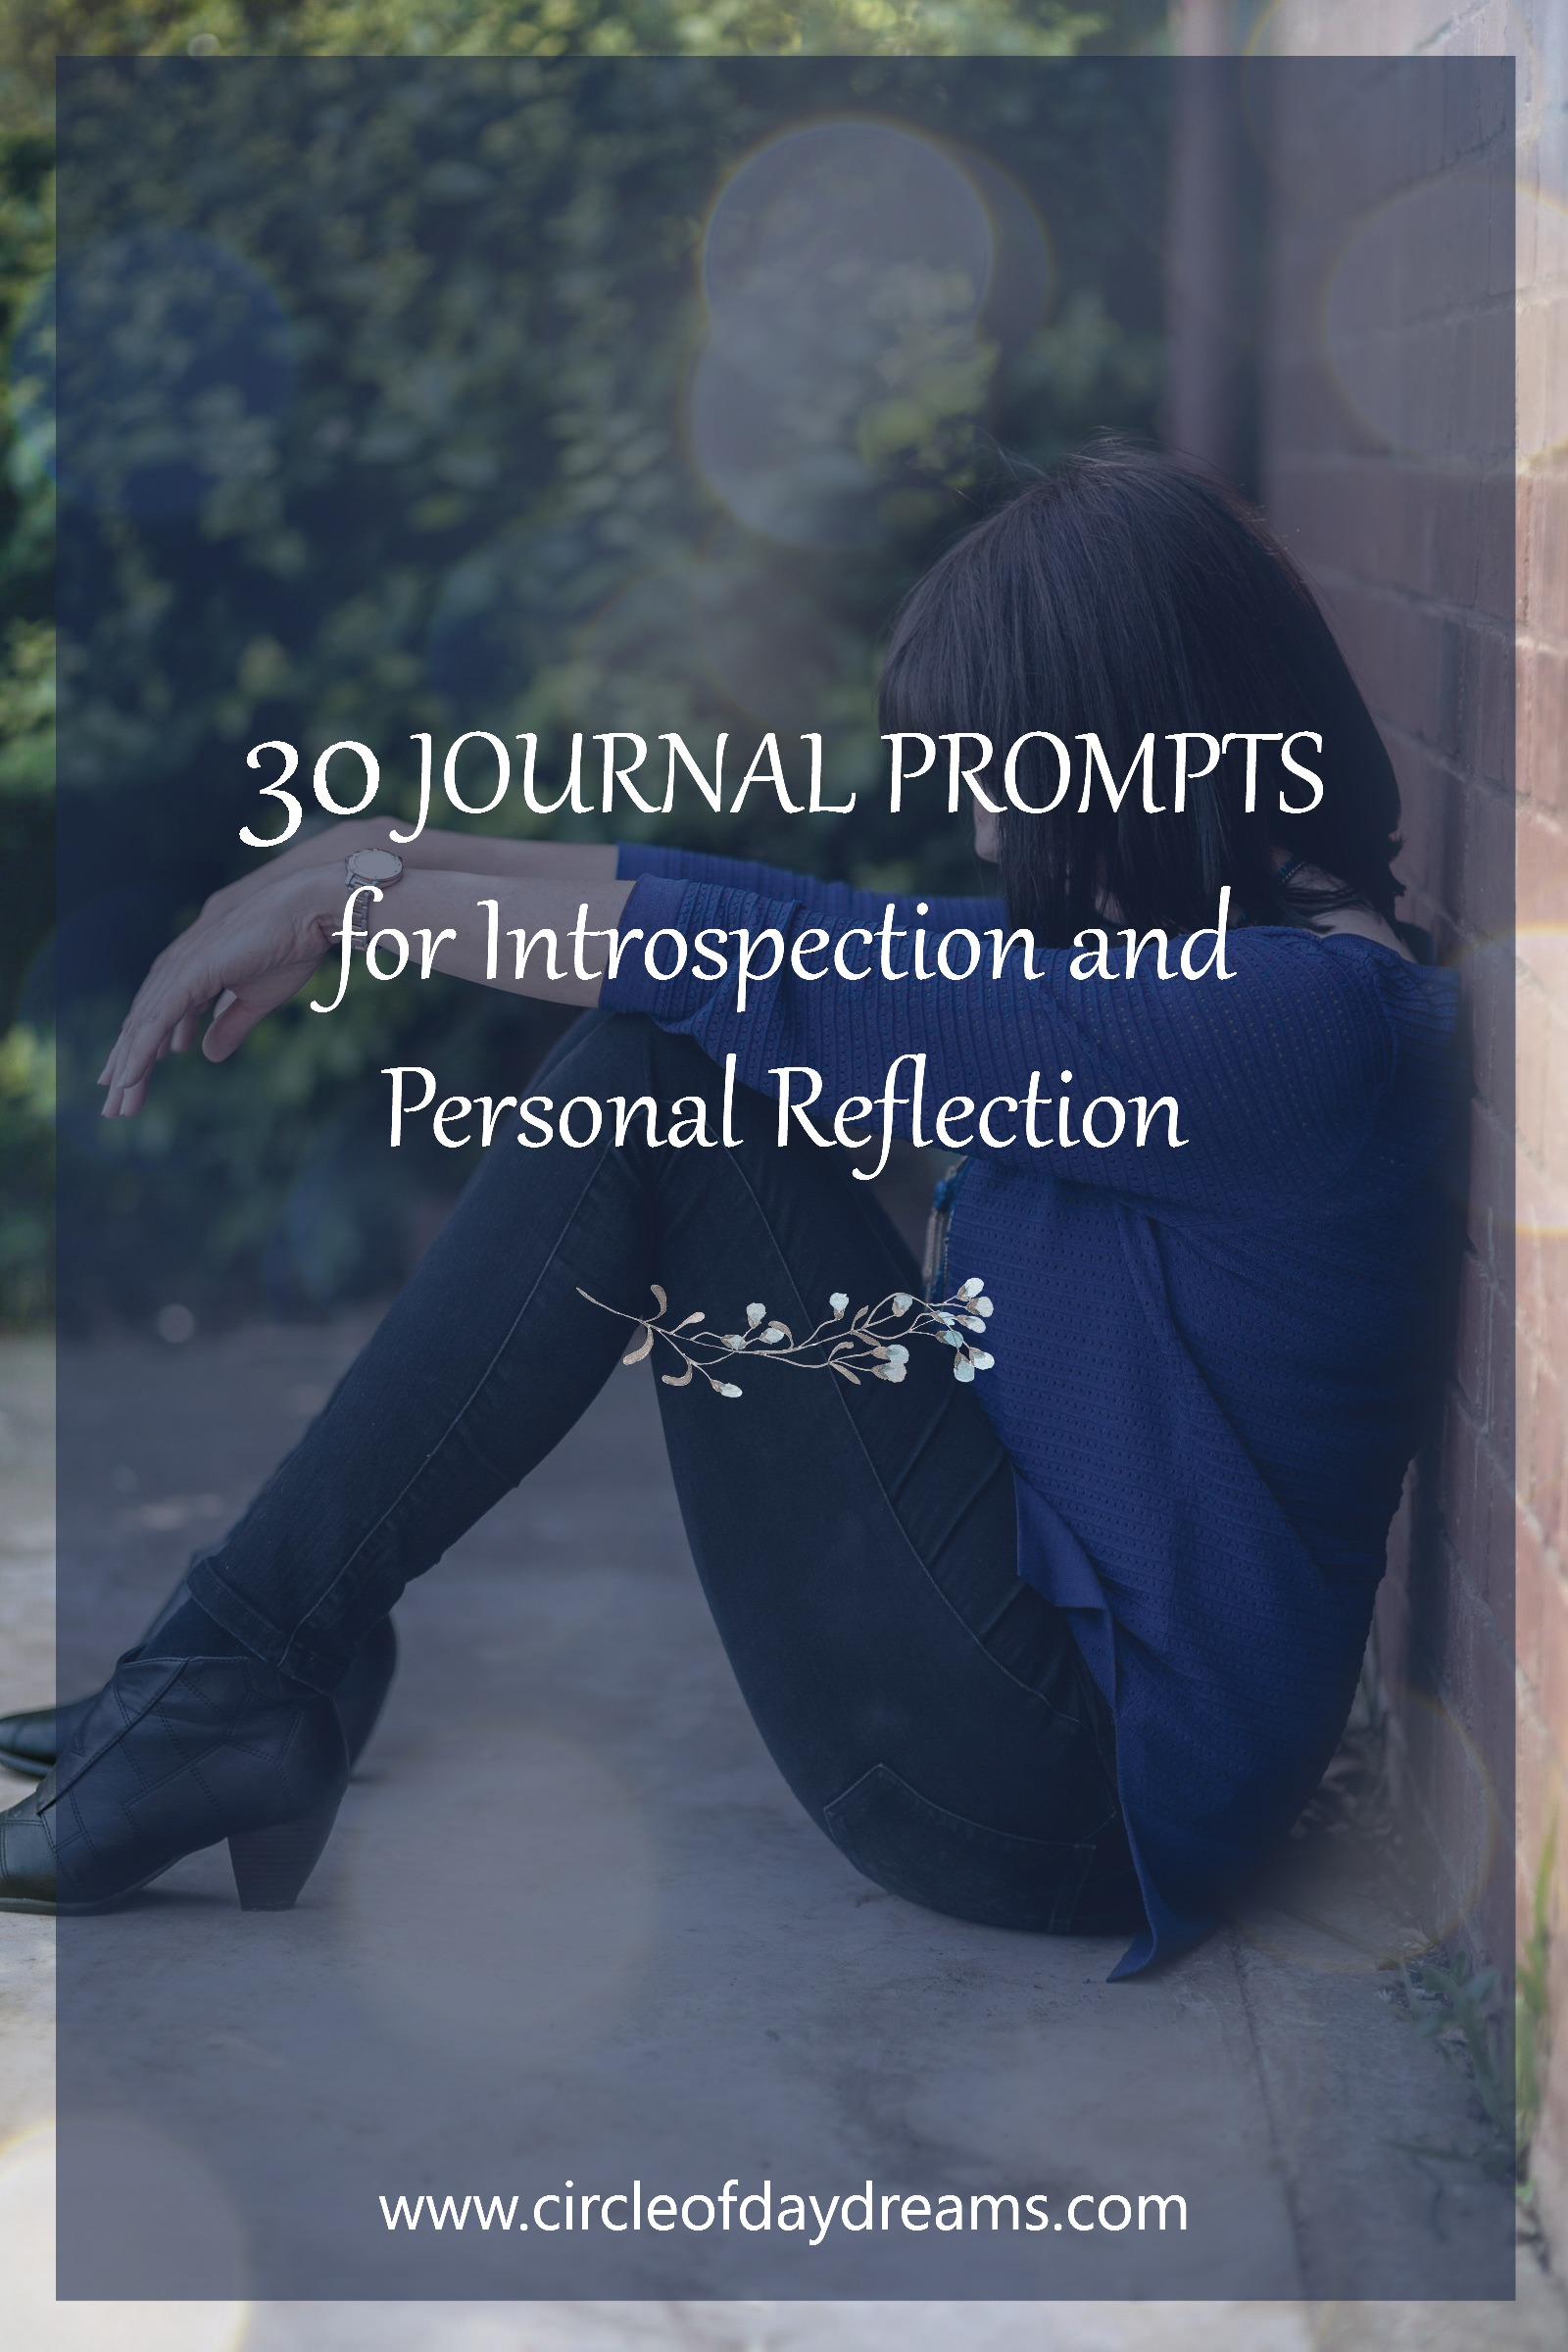 30 Journal Prompts for Introspection and Personal Reflection. Circle of Daydreams. www.circleofdaydreams.com